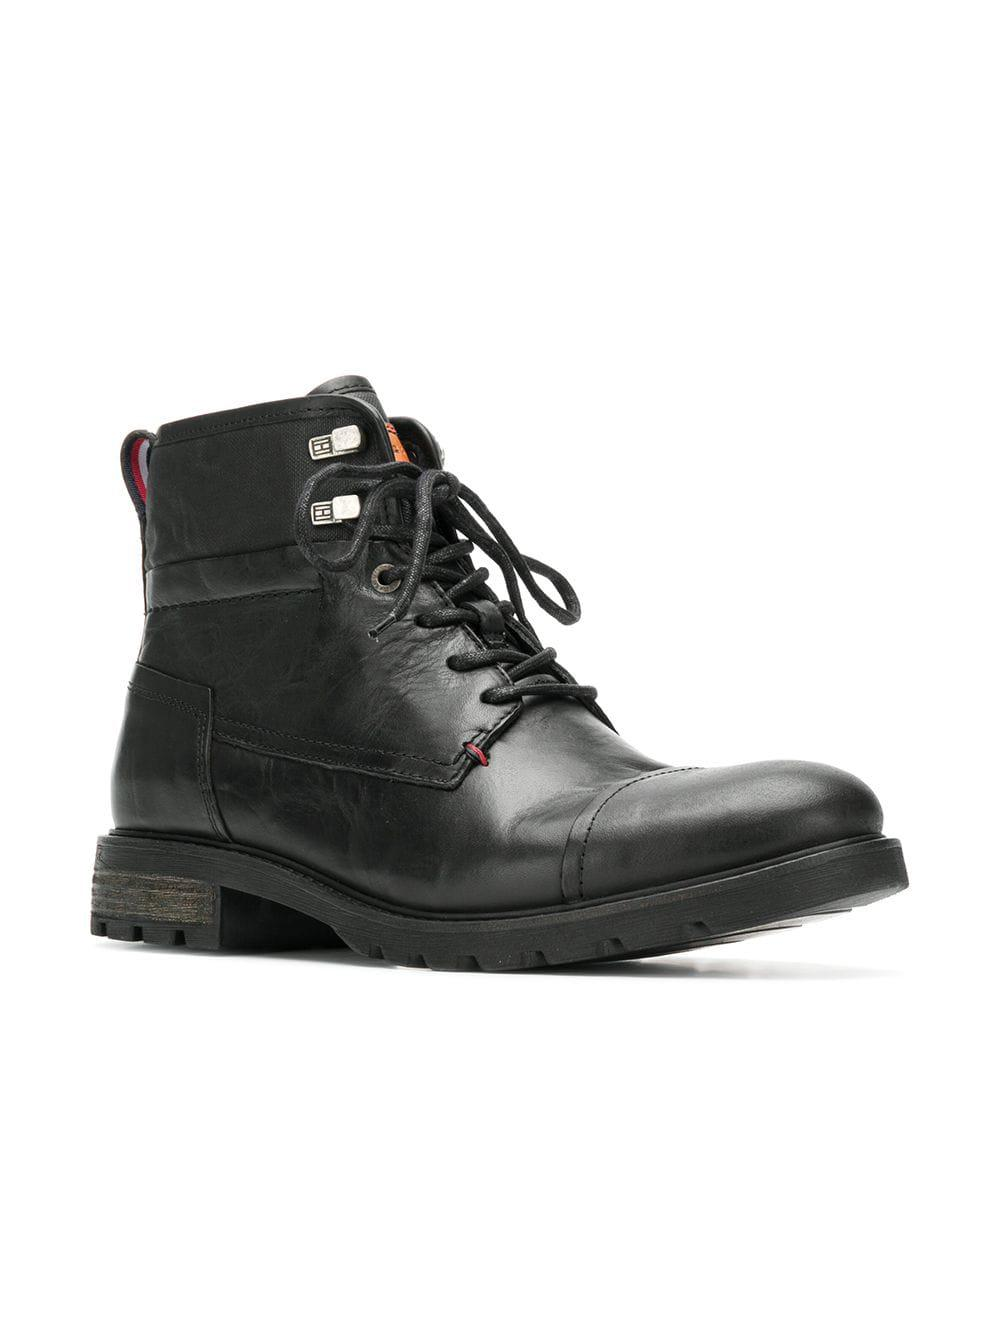 ce4f96856 Tommy Hilfiger Lace Up Ankle Boots in Black for Men - Lyst